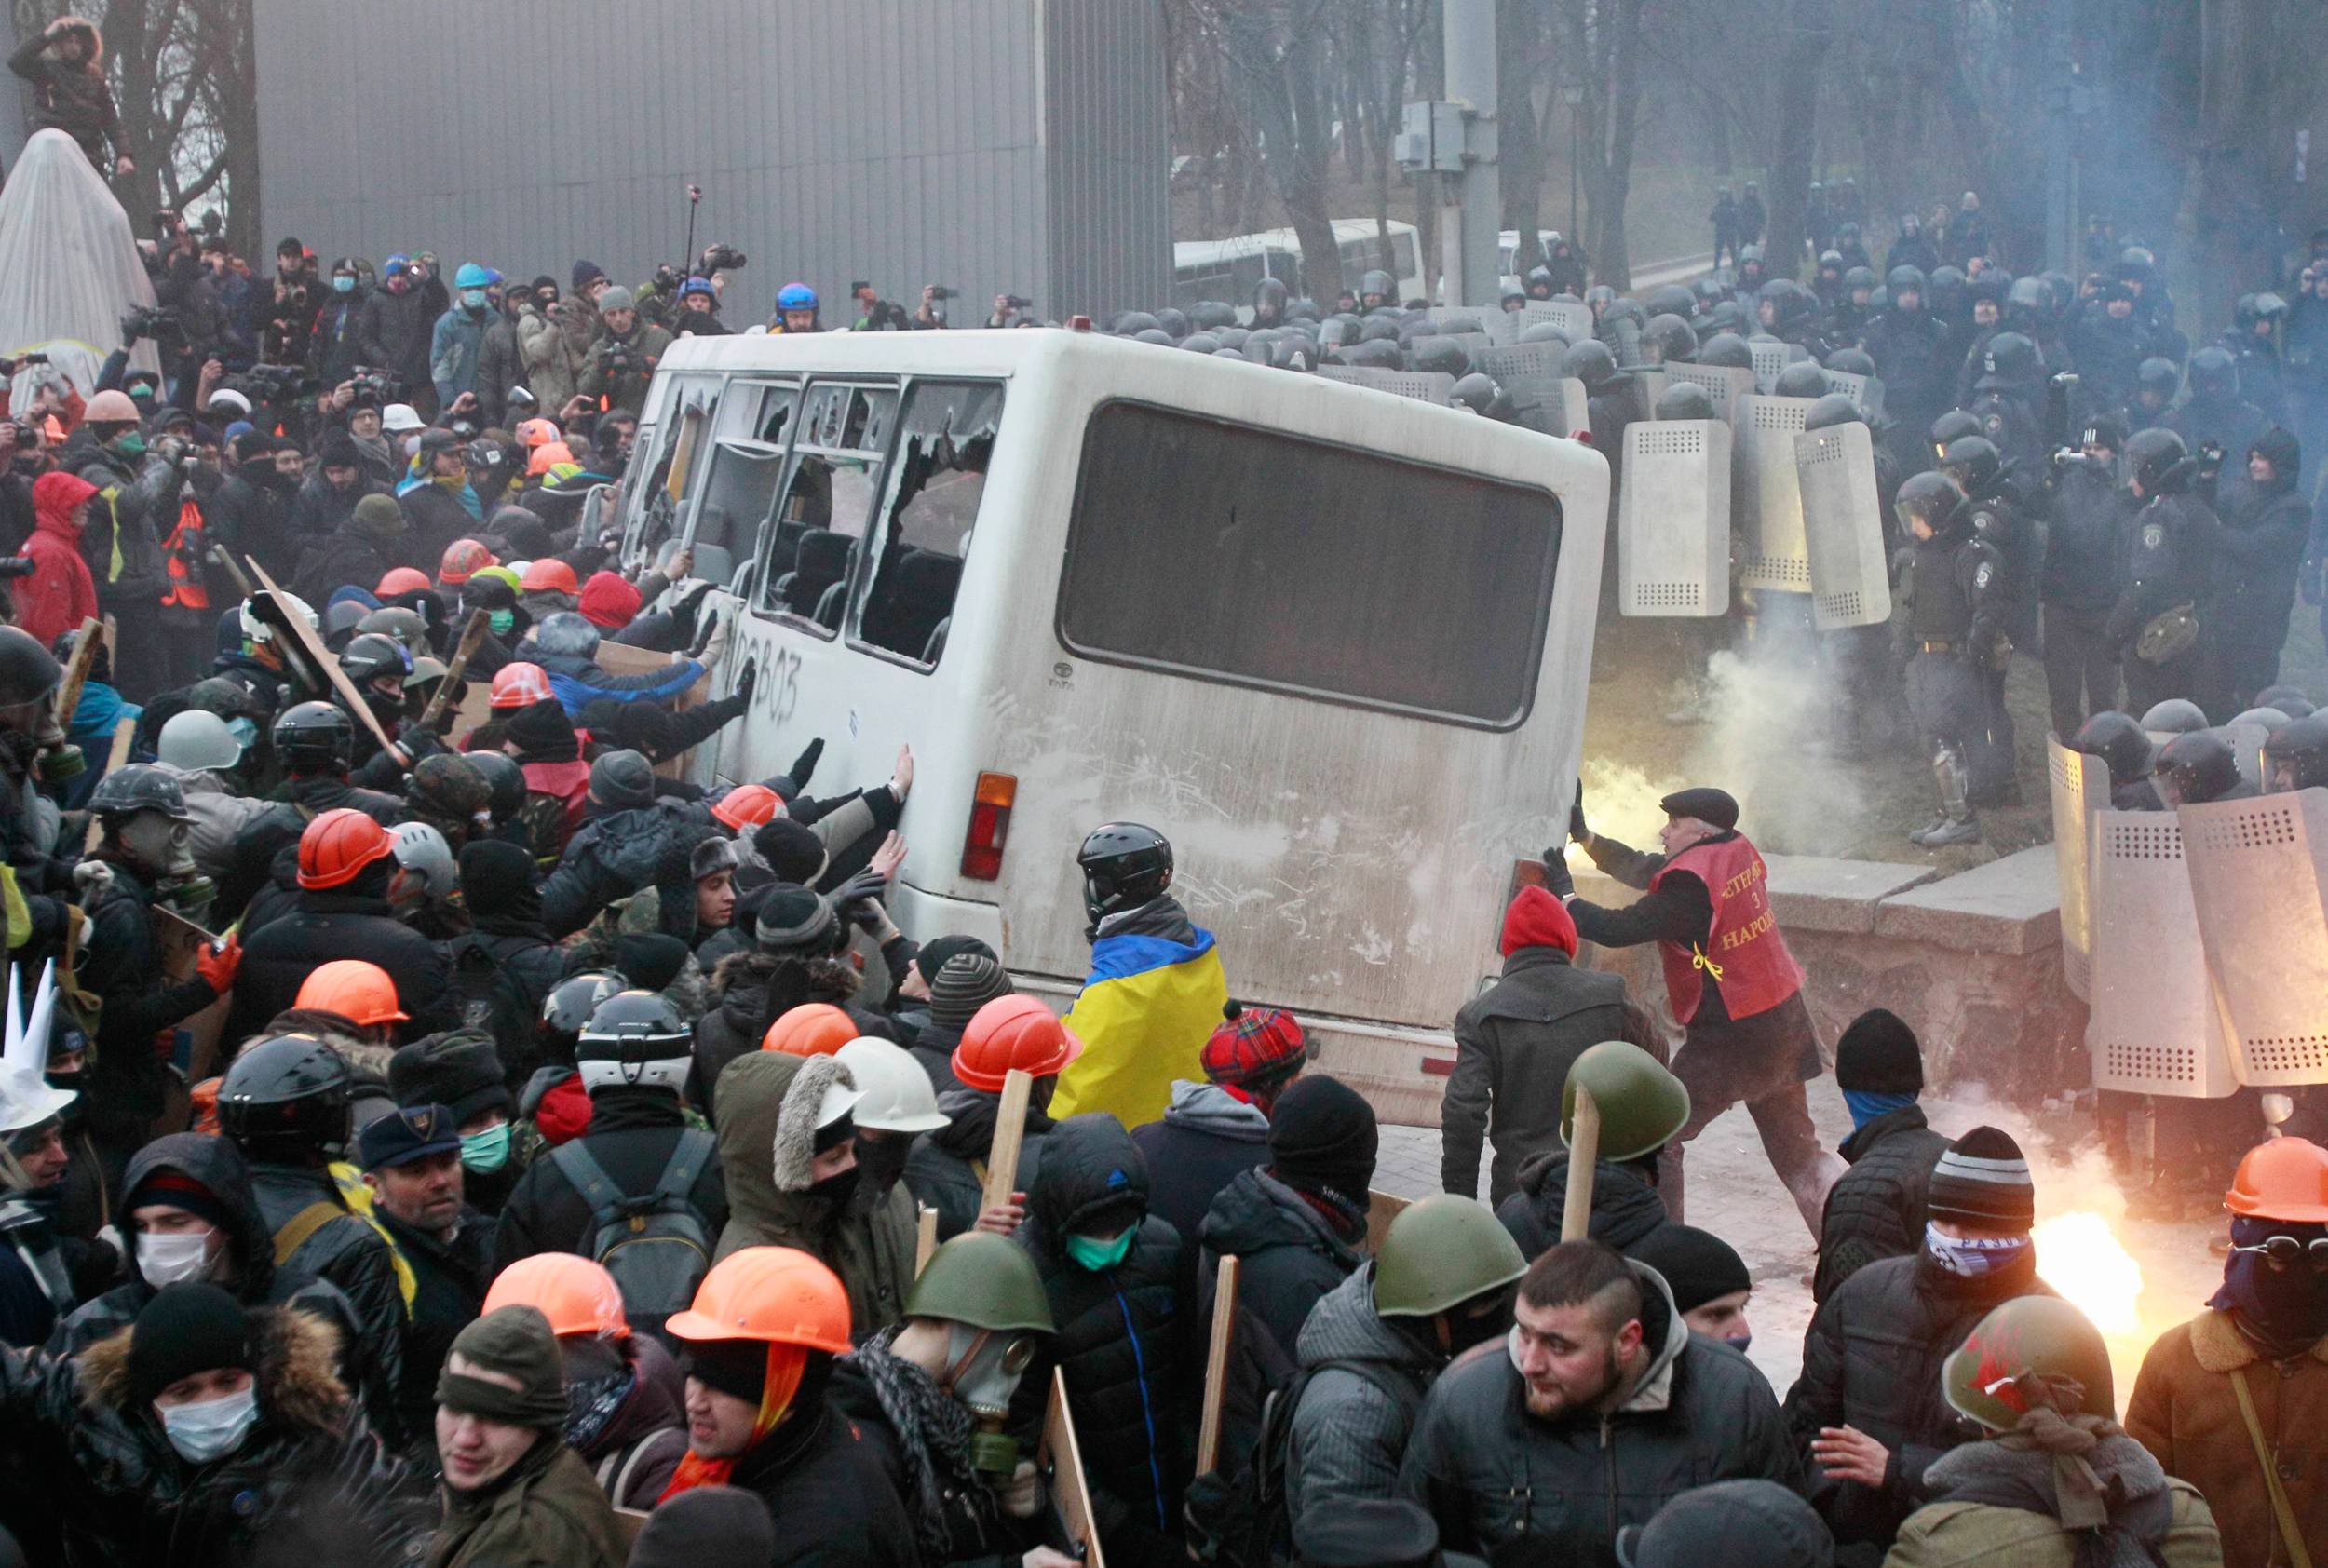 Ukraine protests turn into fiery street battles - World News